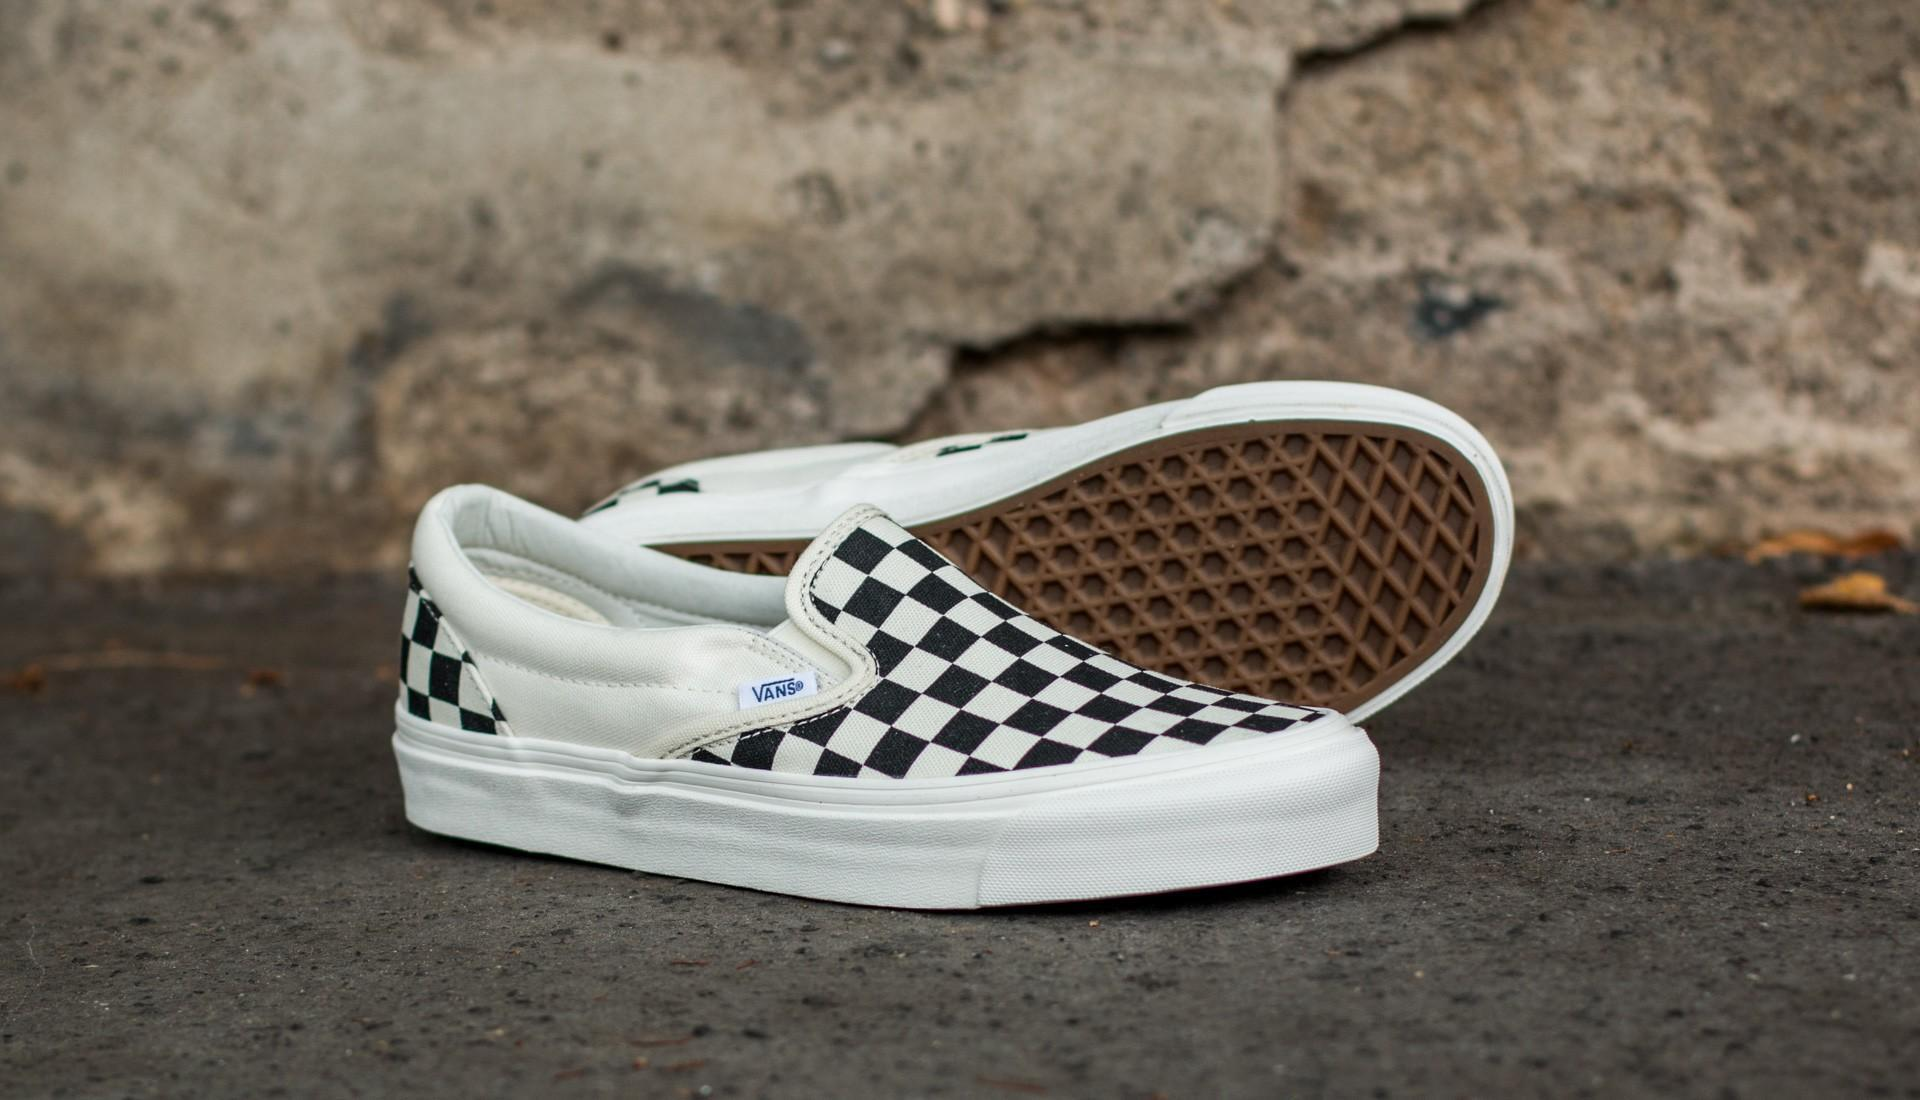 861fbf8548 Vans - Og Classic Slip On Lx (canvas) Black  White Checkerboard - Lyst.  View fullscreen